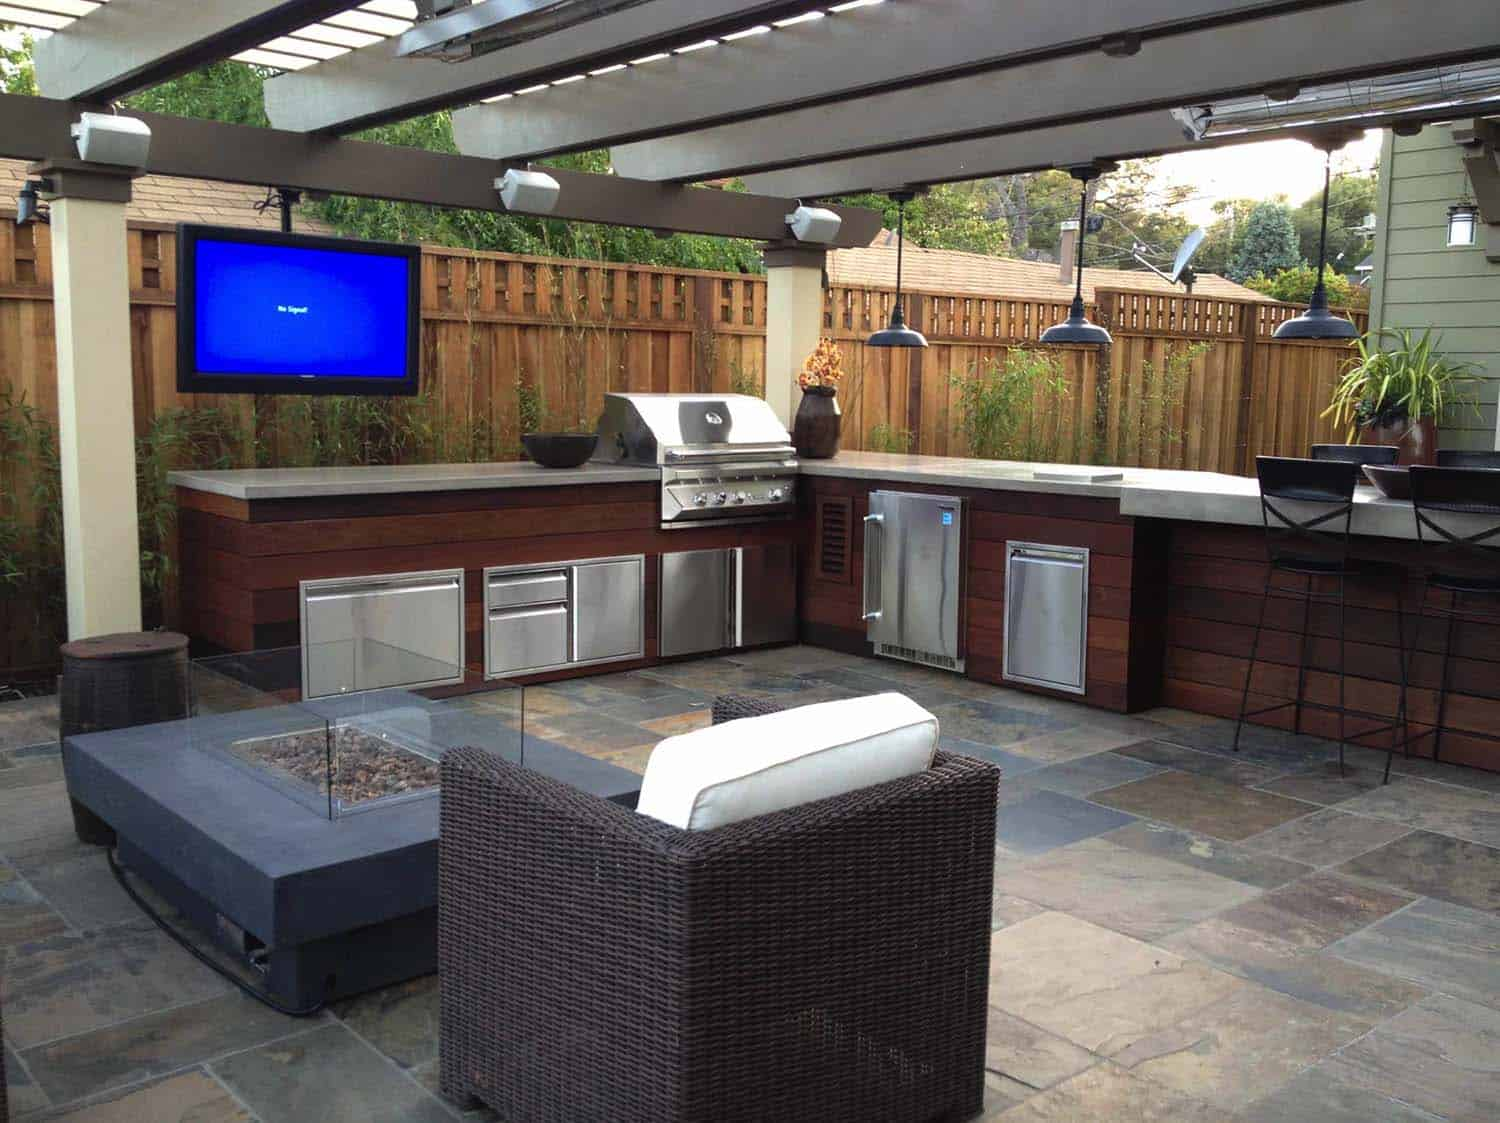 Outdoor Kitchens-Bars Entertaining-16-1 Kindesign.jpg